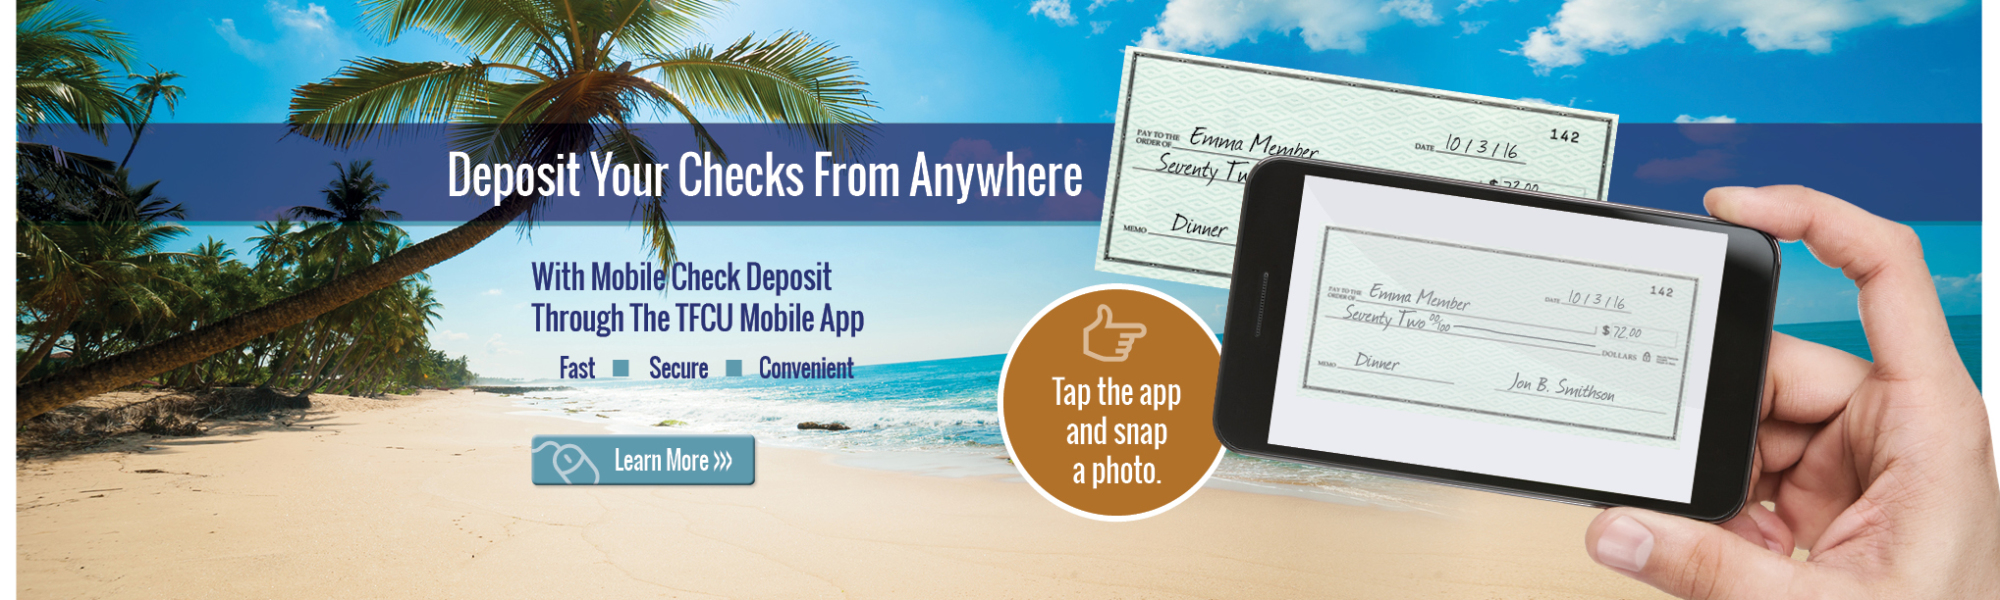 Deposit Your Checks from Anywhere